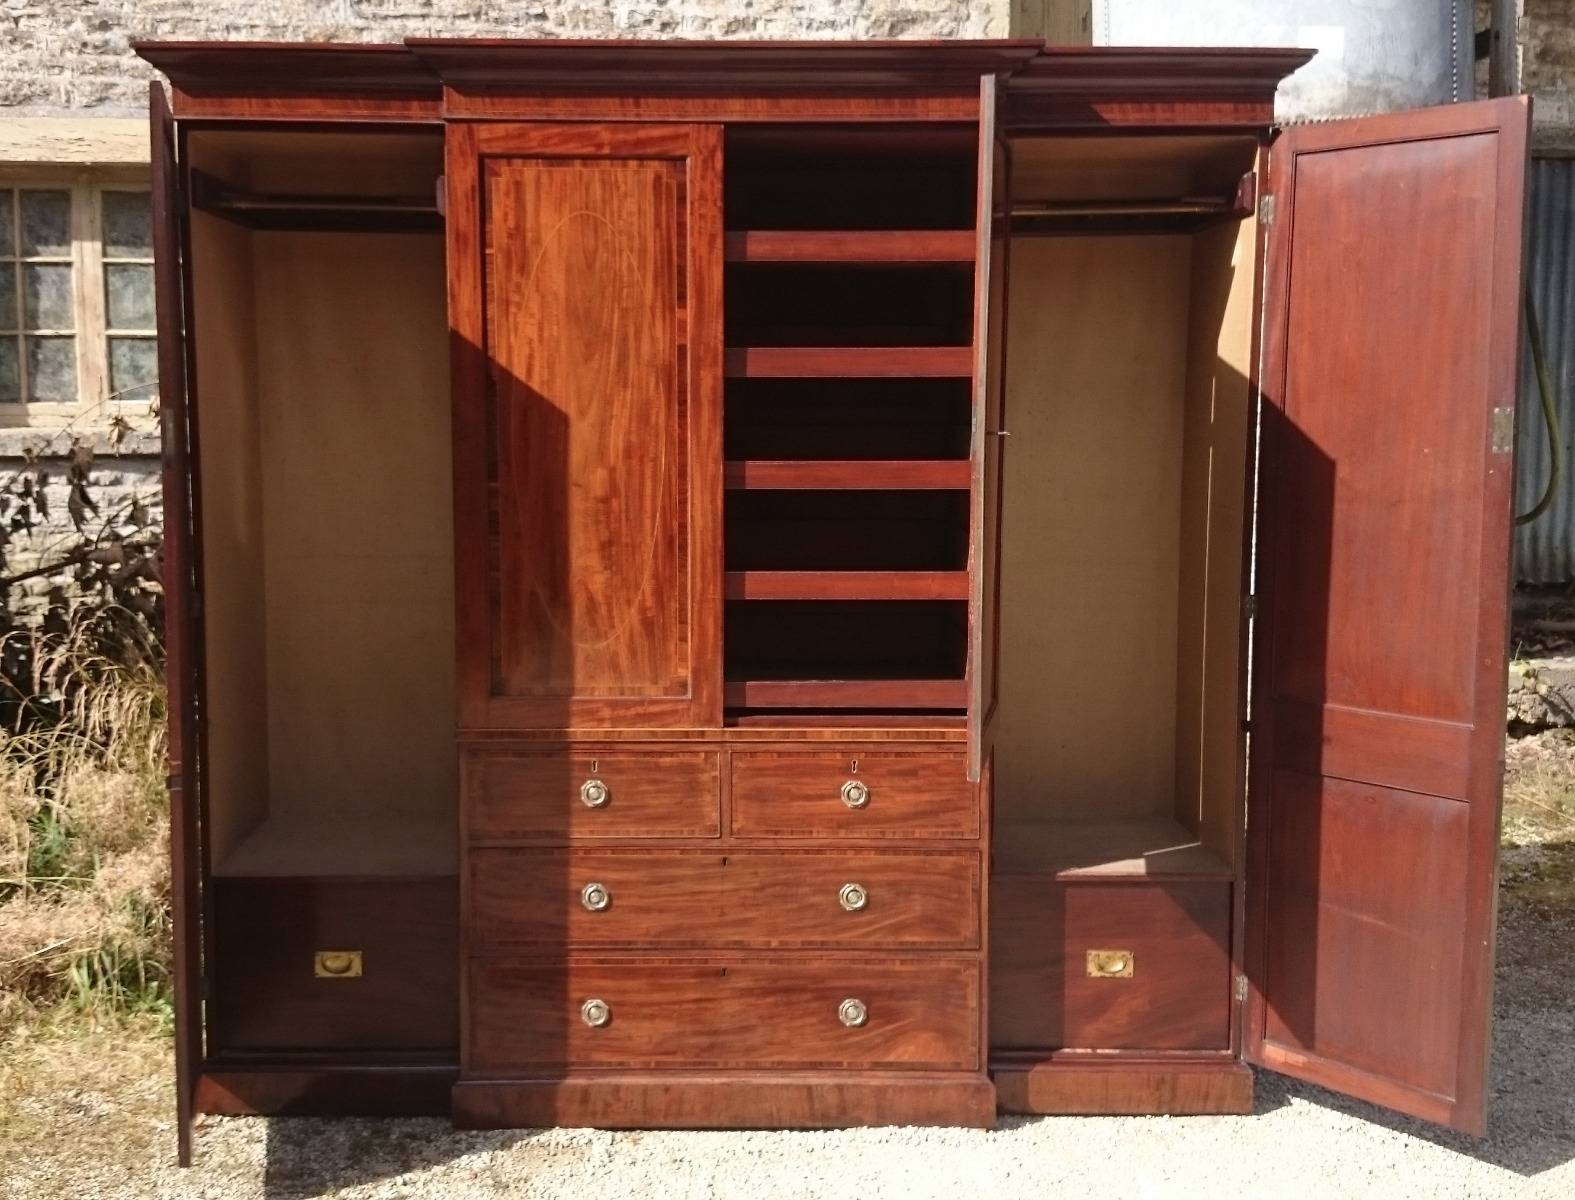 Antique Wardrobe & Linen Presses – Hares Antiques Regarding Georgian Breakfront Wardrobe (View 7 of 30)